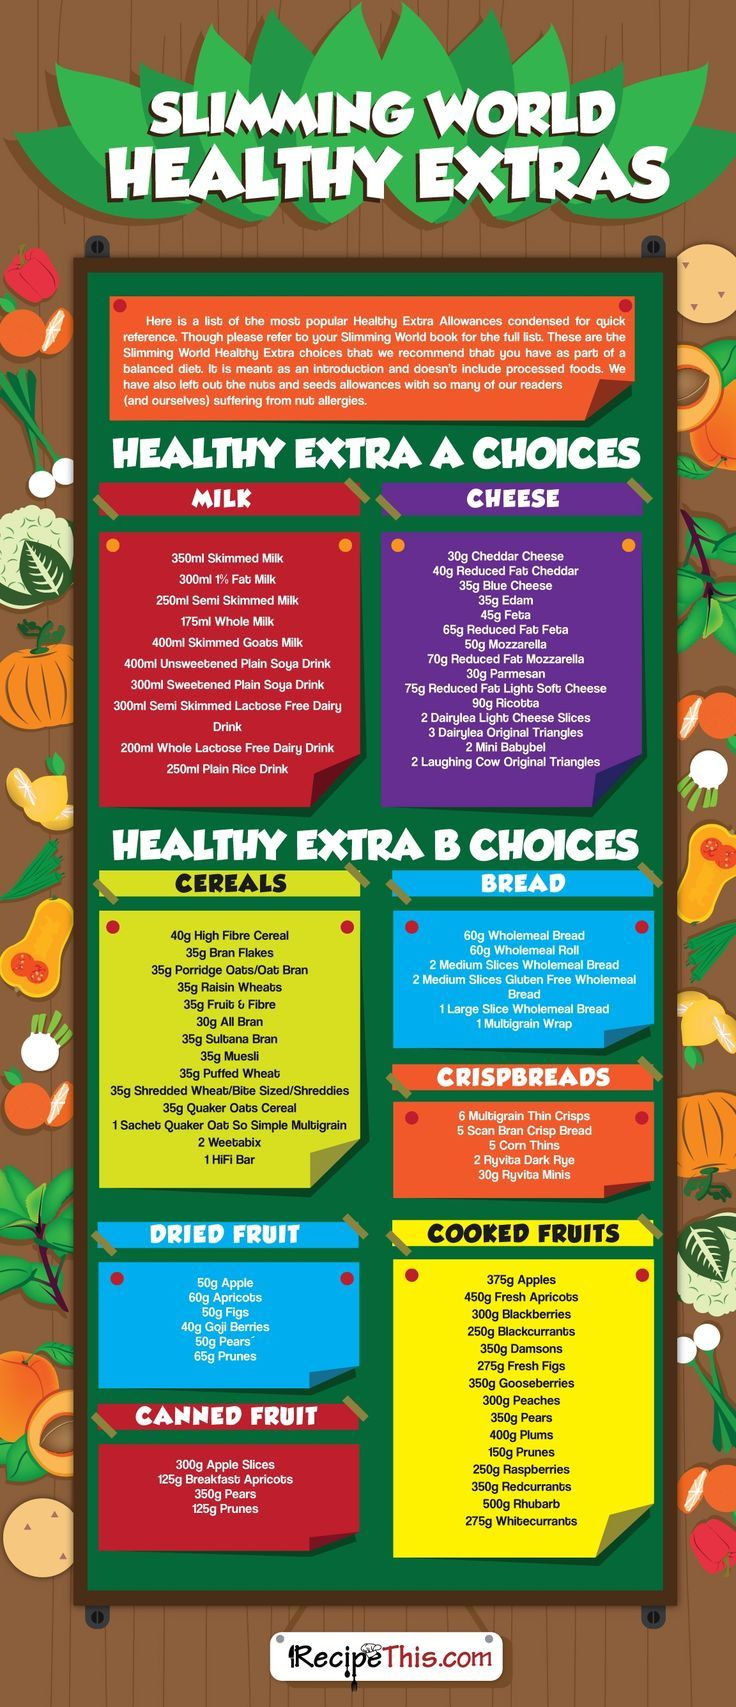 Slimming World | The Slimming World healthy extras brought to you by RecipeThis.com